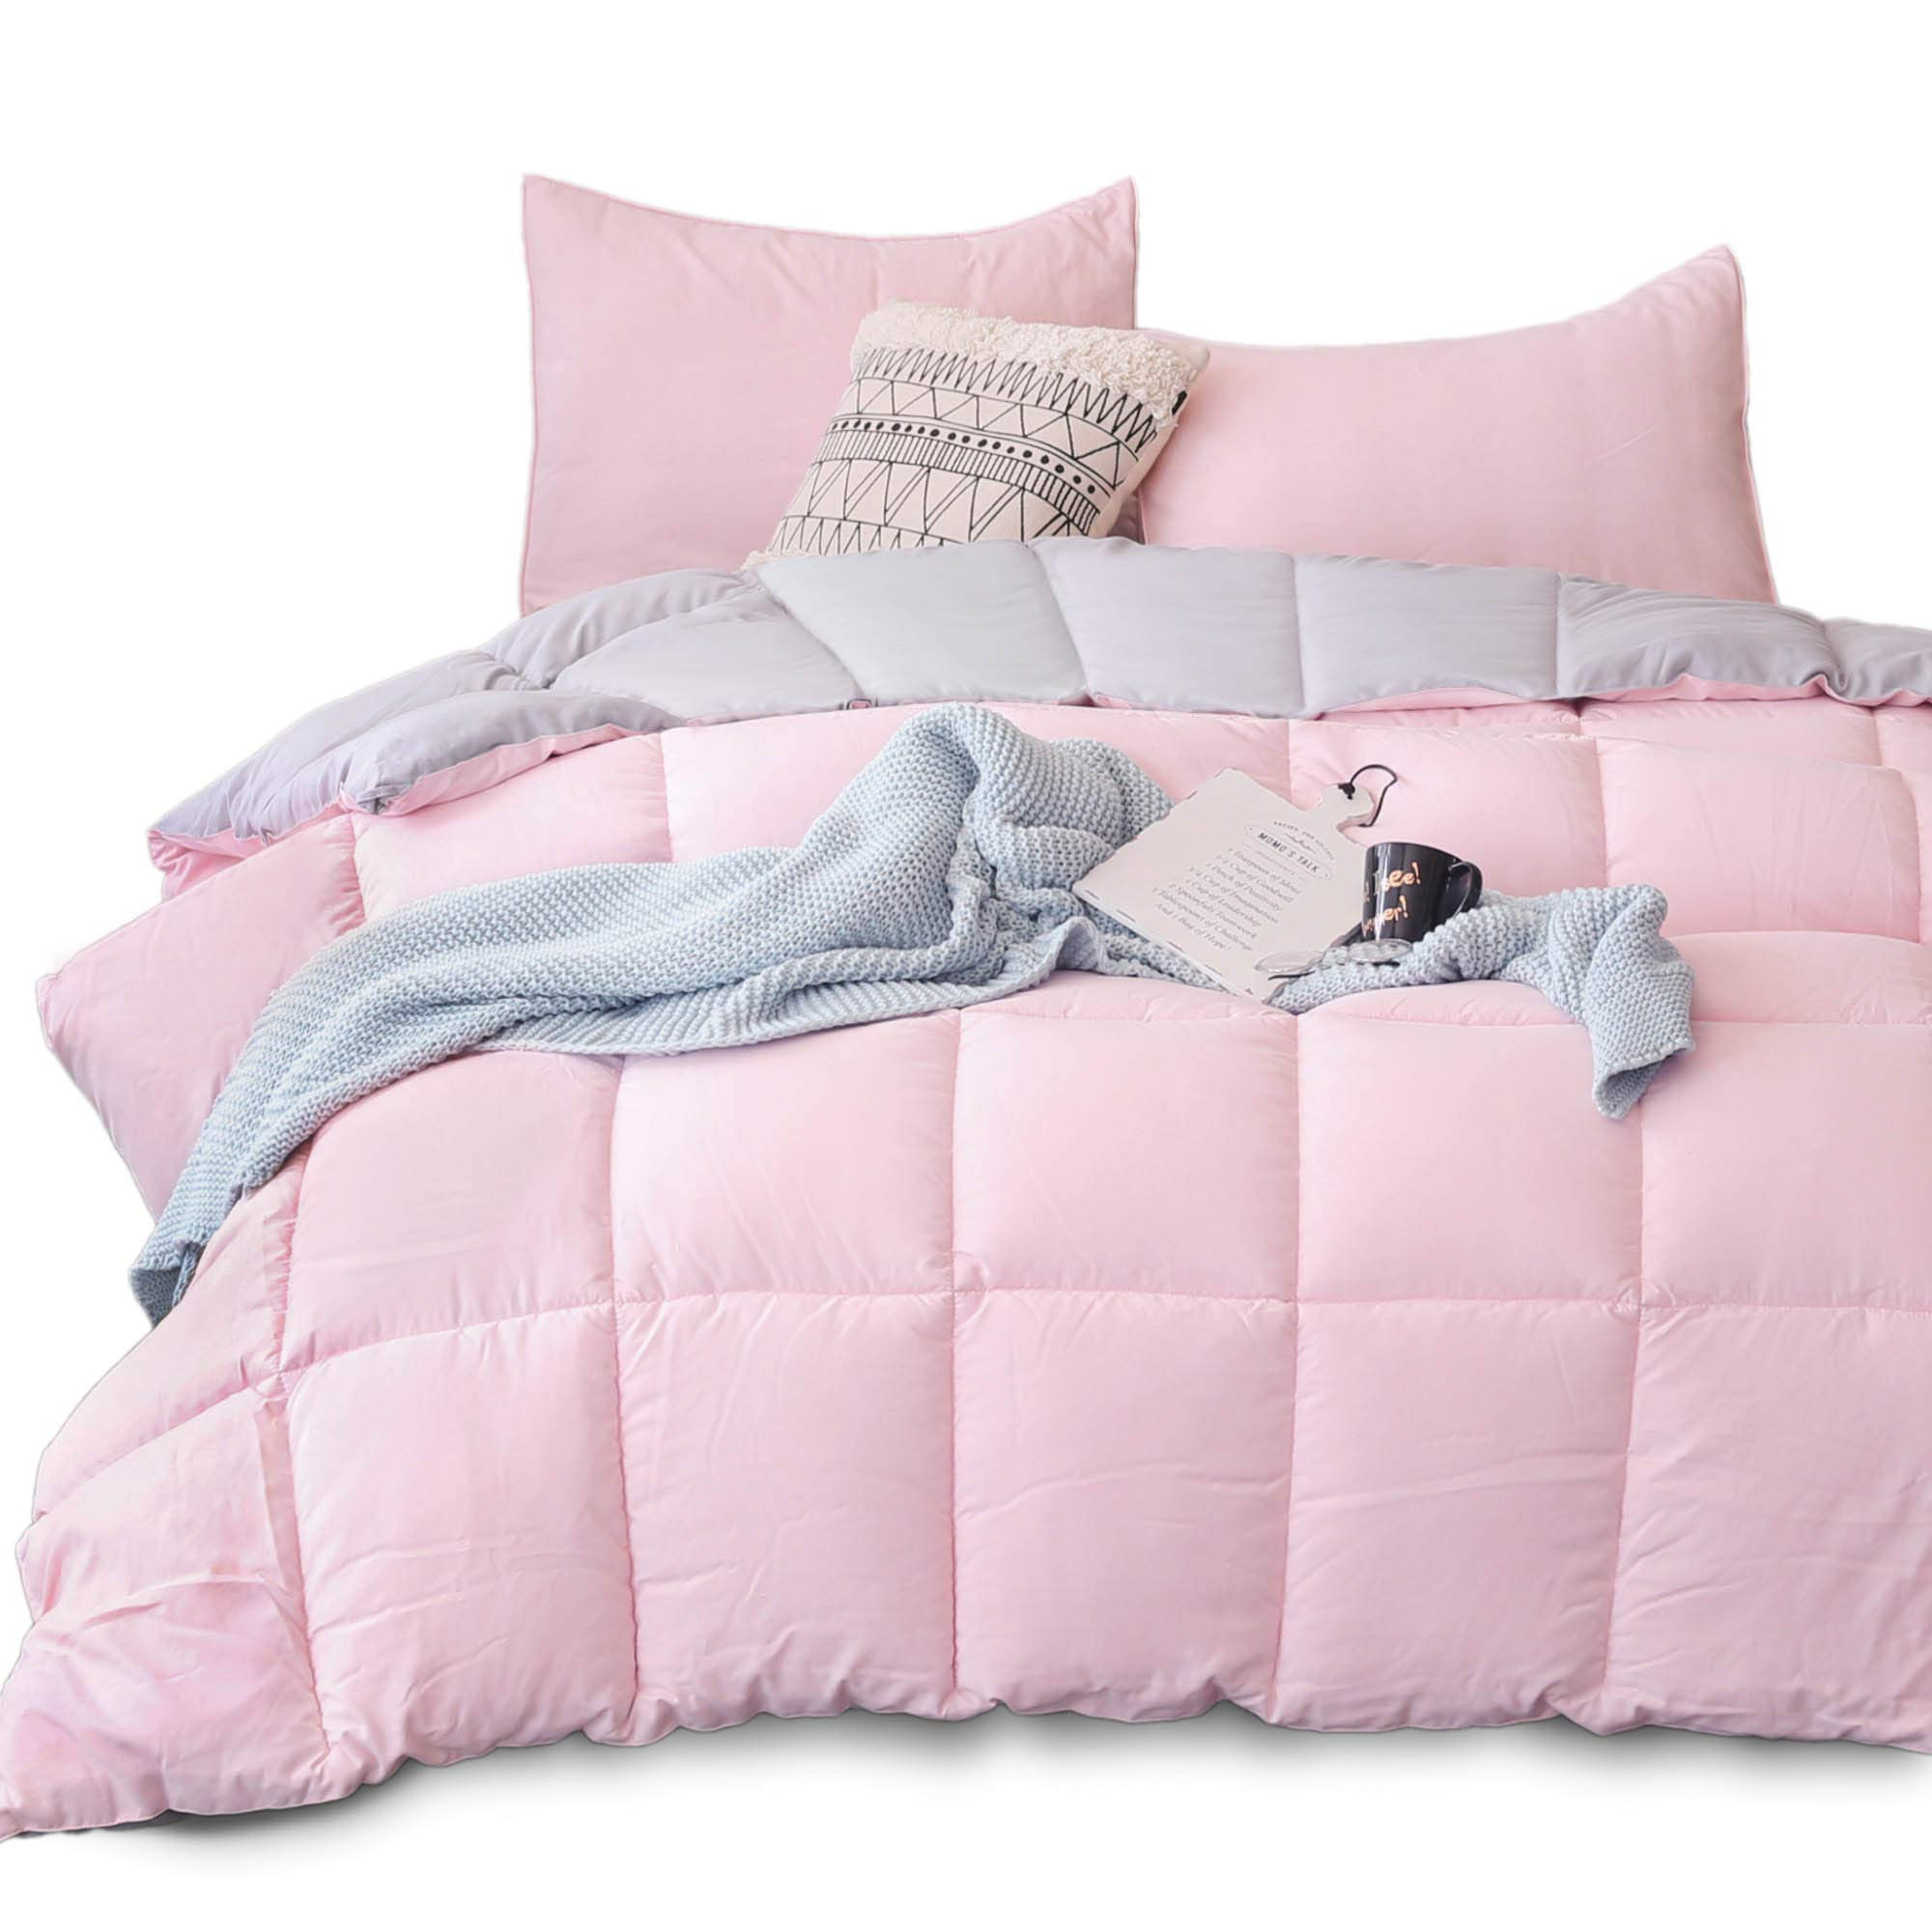 KASENTEX All All Season Down Down Alternative Quilted Comforter Set with Sham(s) - Reversible Ultra Soft Duvet Insert Hypoallergenic Machine Washable, Pink Potpourri/Quartz Silver by KASENTEX (Image #2)